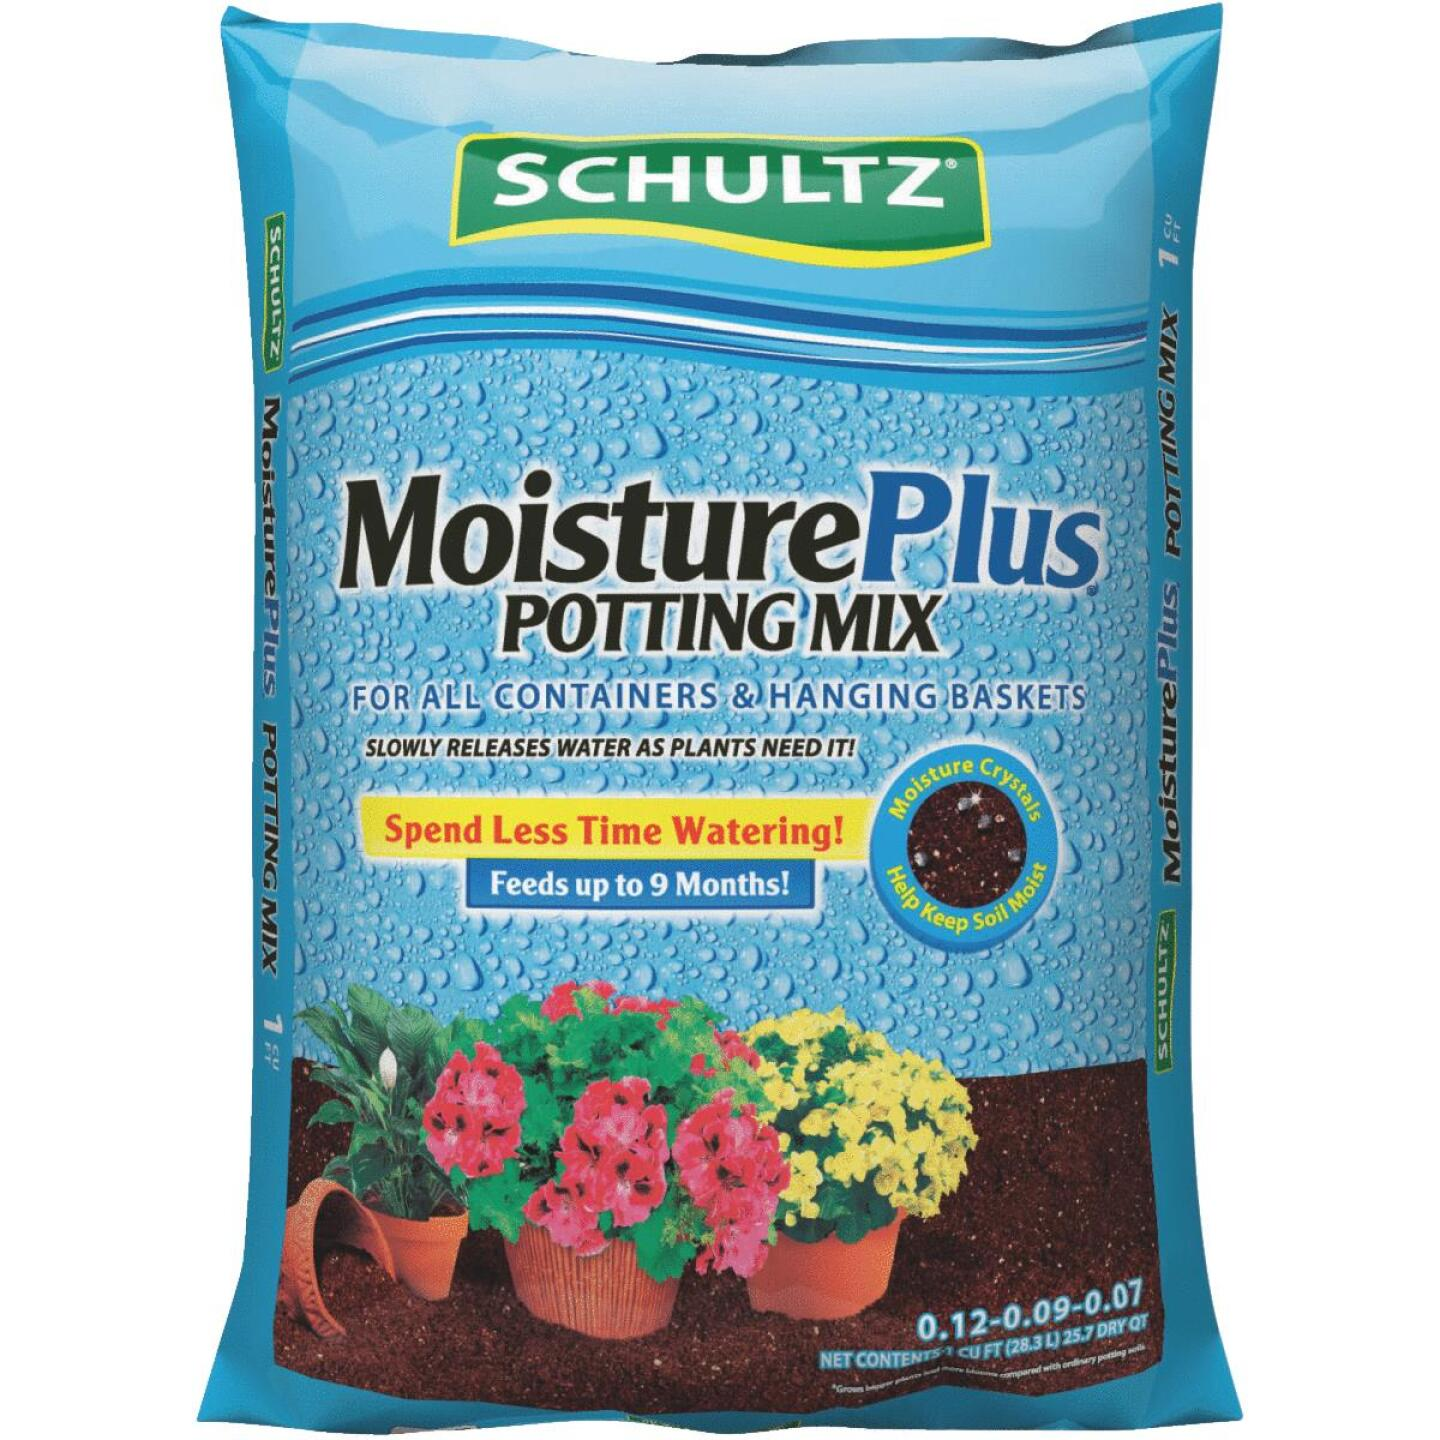 Schultz MoisturePlus 1 Cu. Ft. All Purpose Containers & Hanging Baskets Potting Soil Mix Image 1